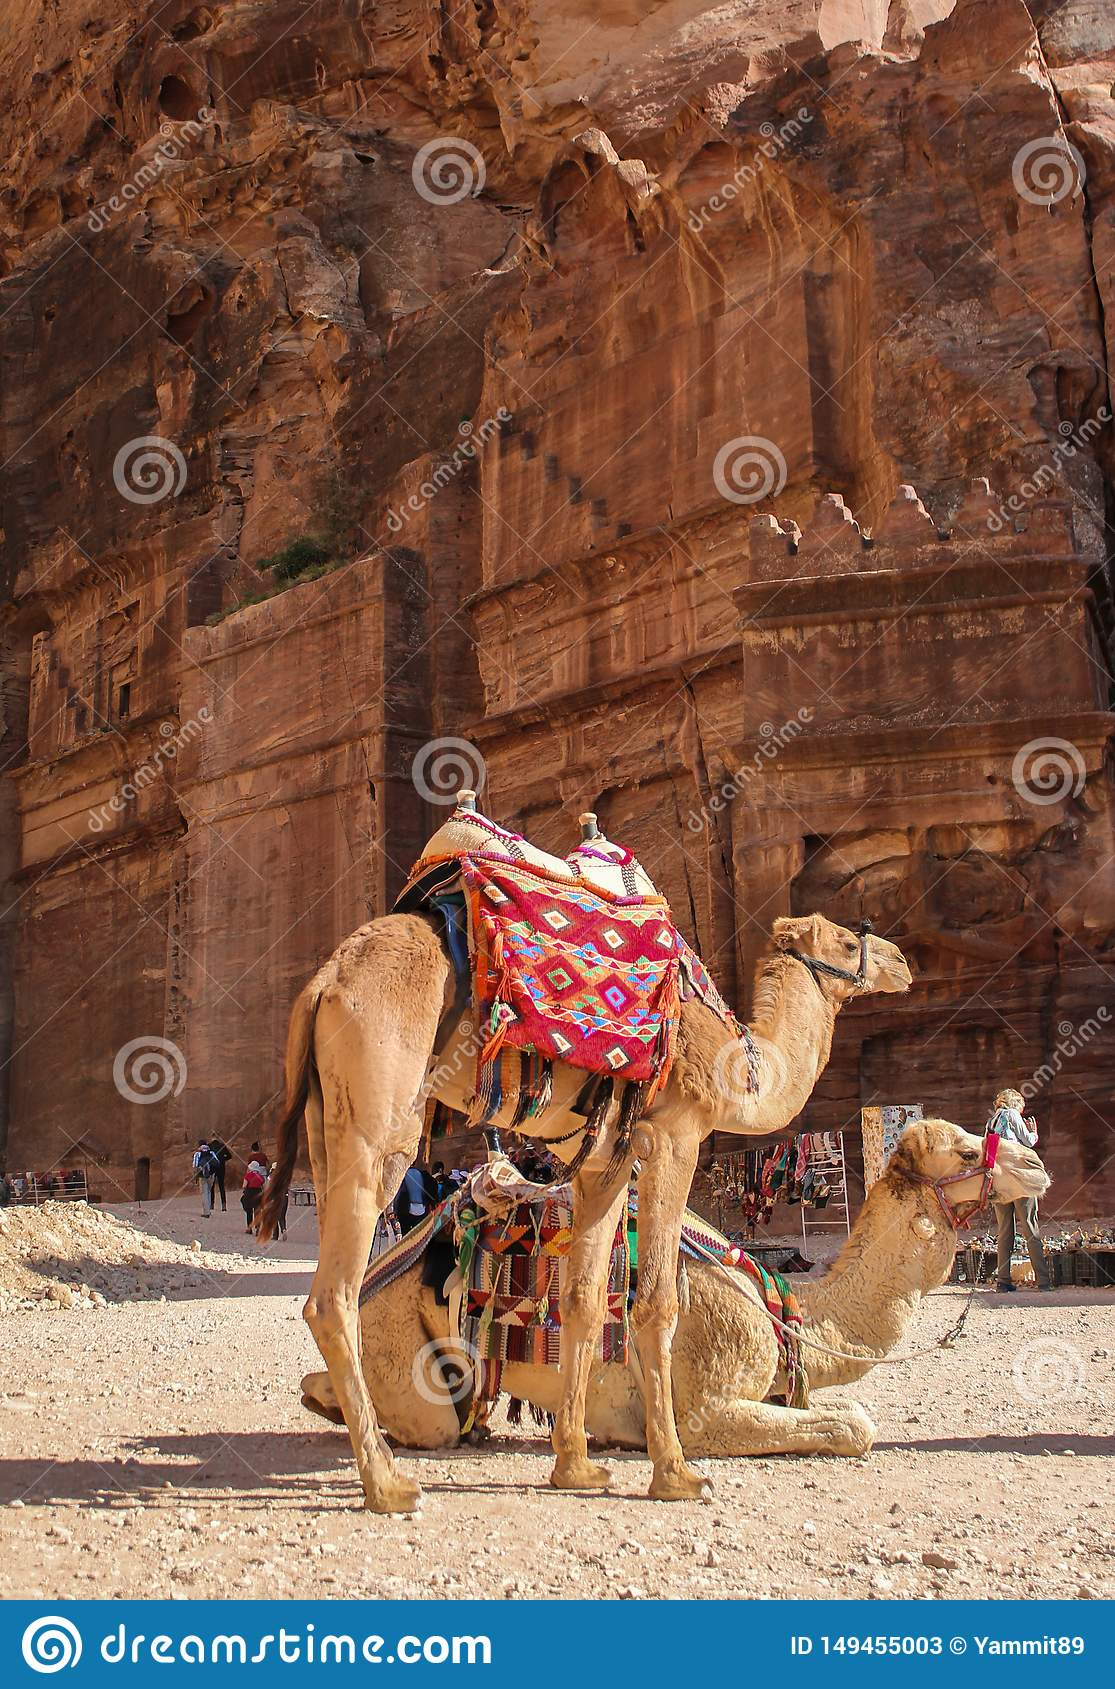 Tired camels are resting in the rock city Petra